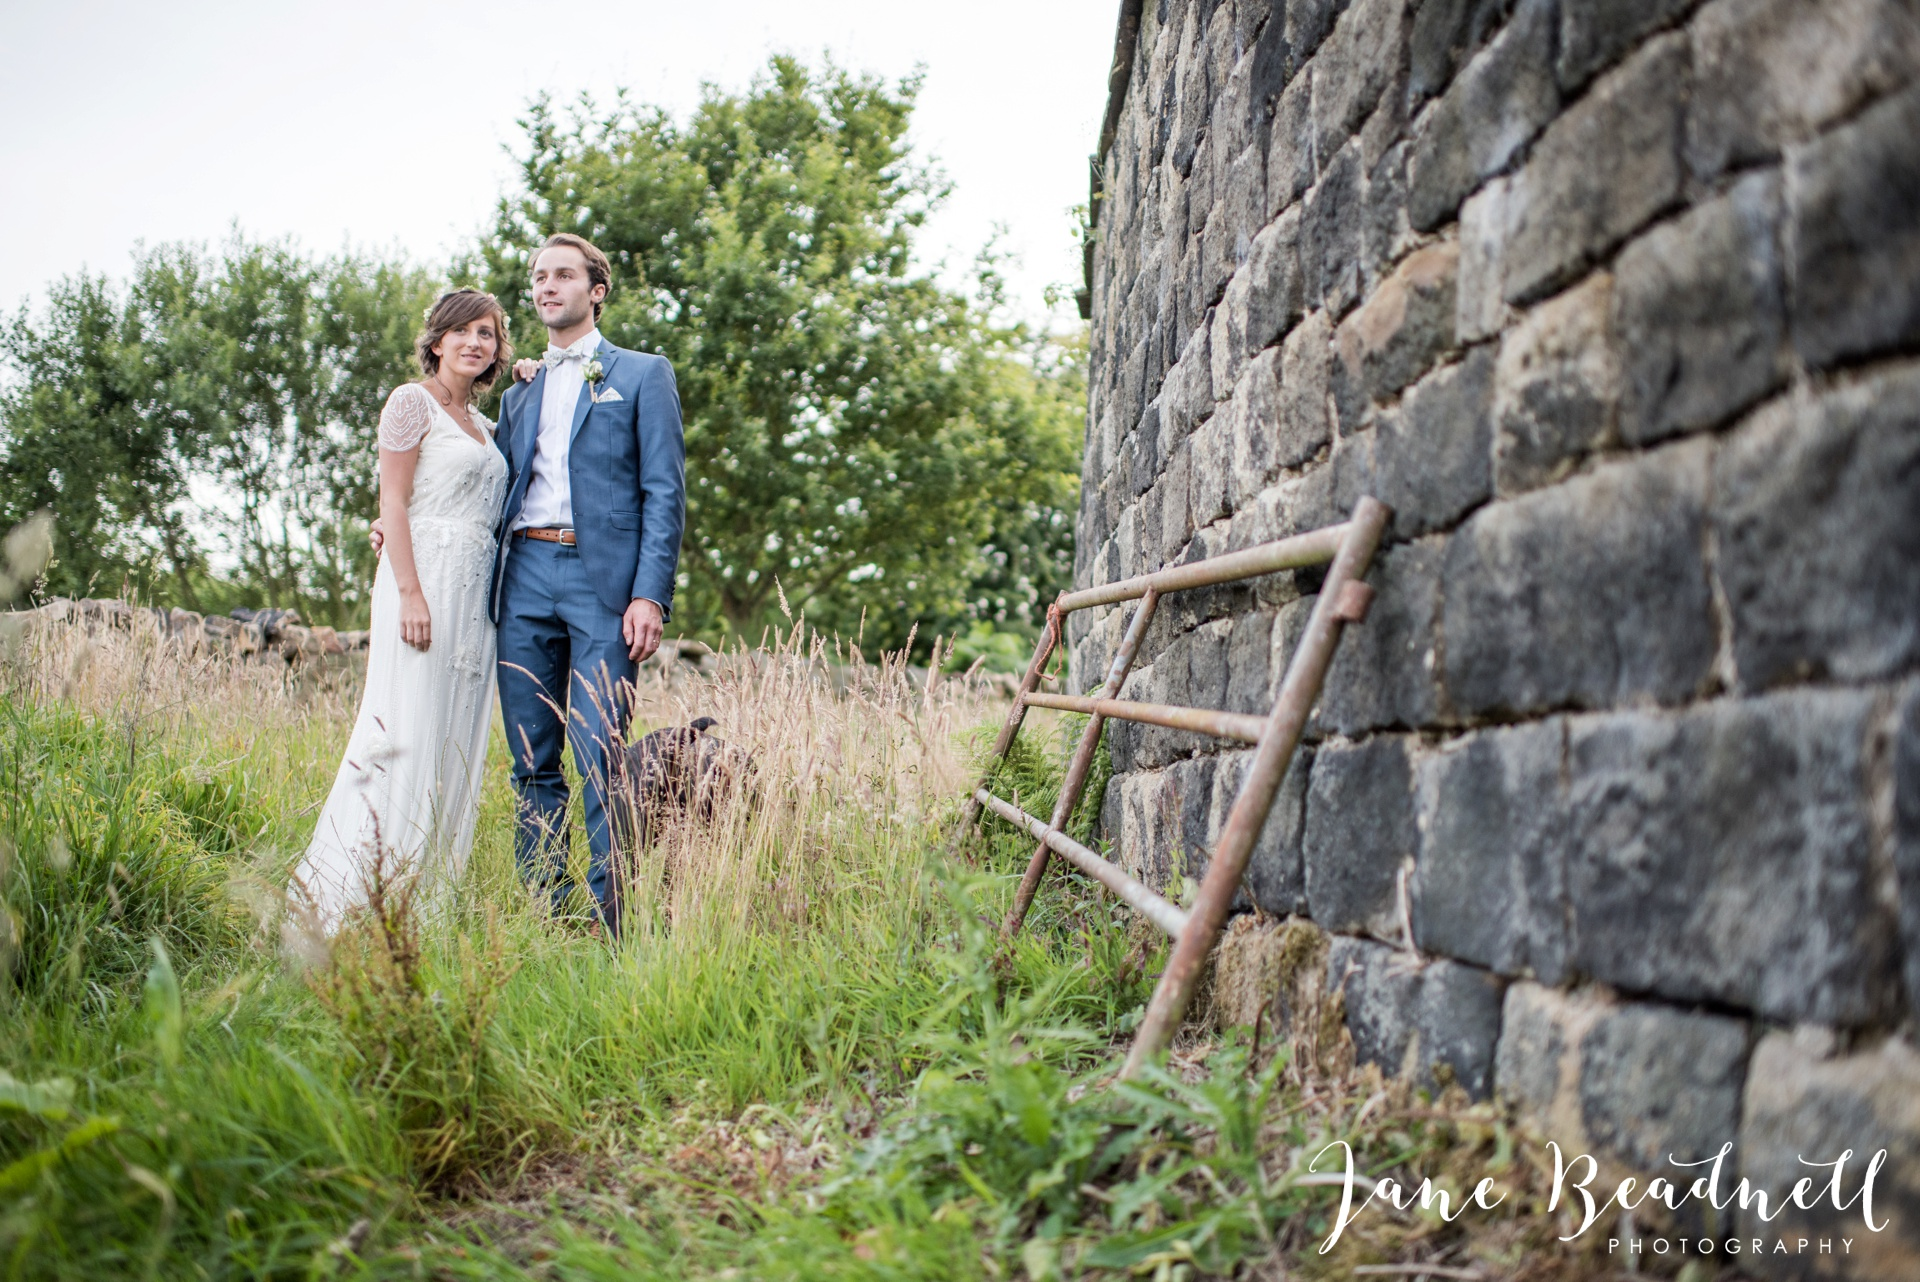 Jane Beadnell fine art wedding photographer Leeds_0138